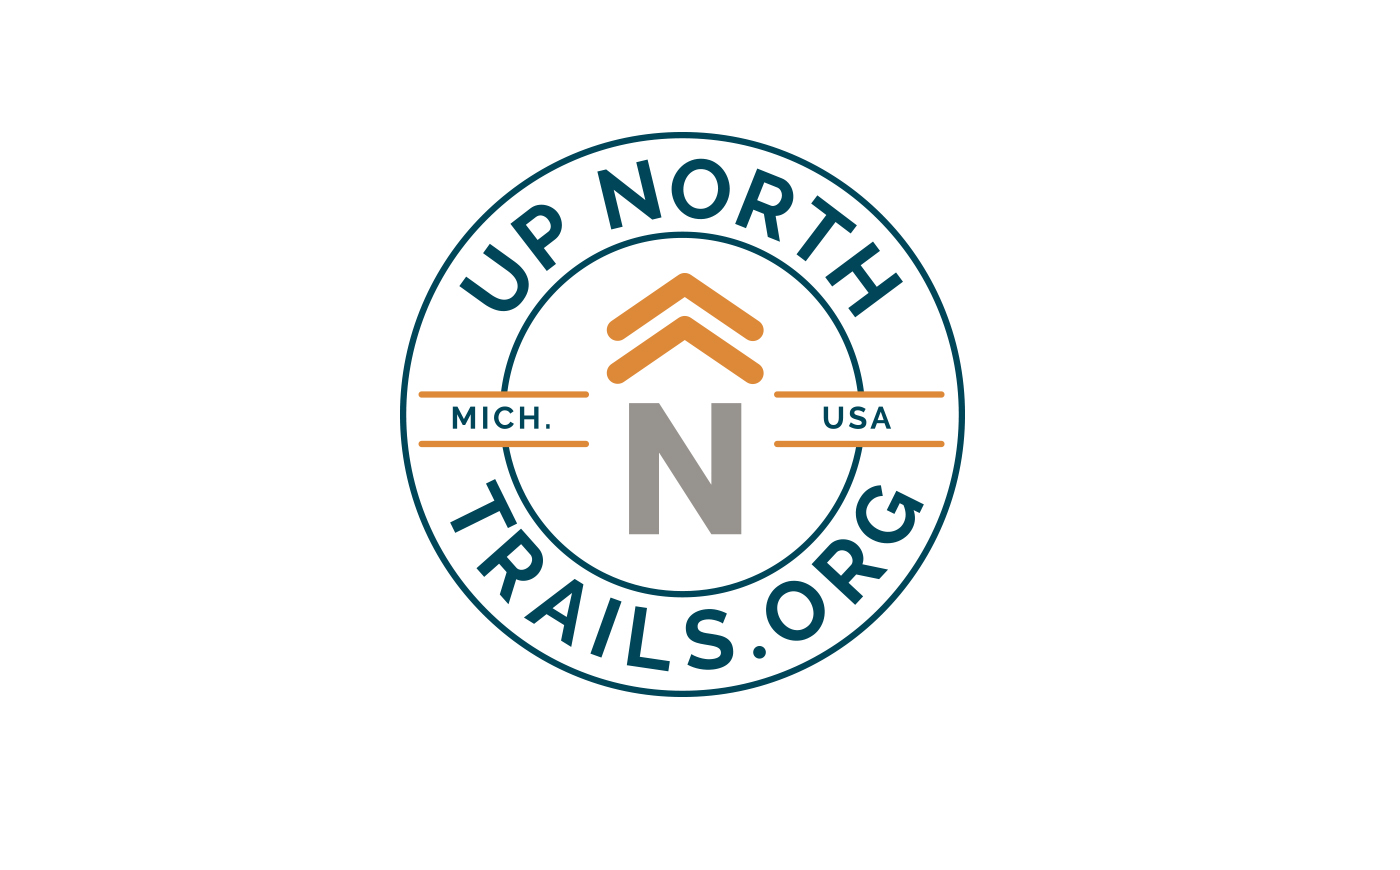 Up North Trails